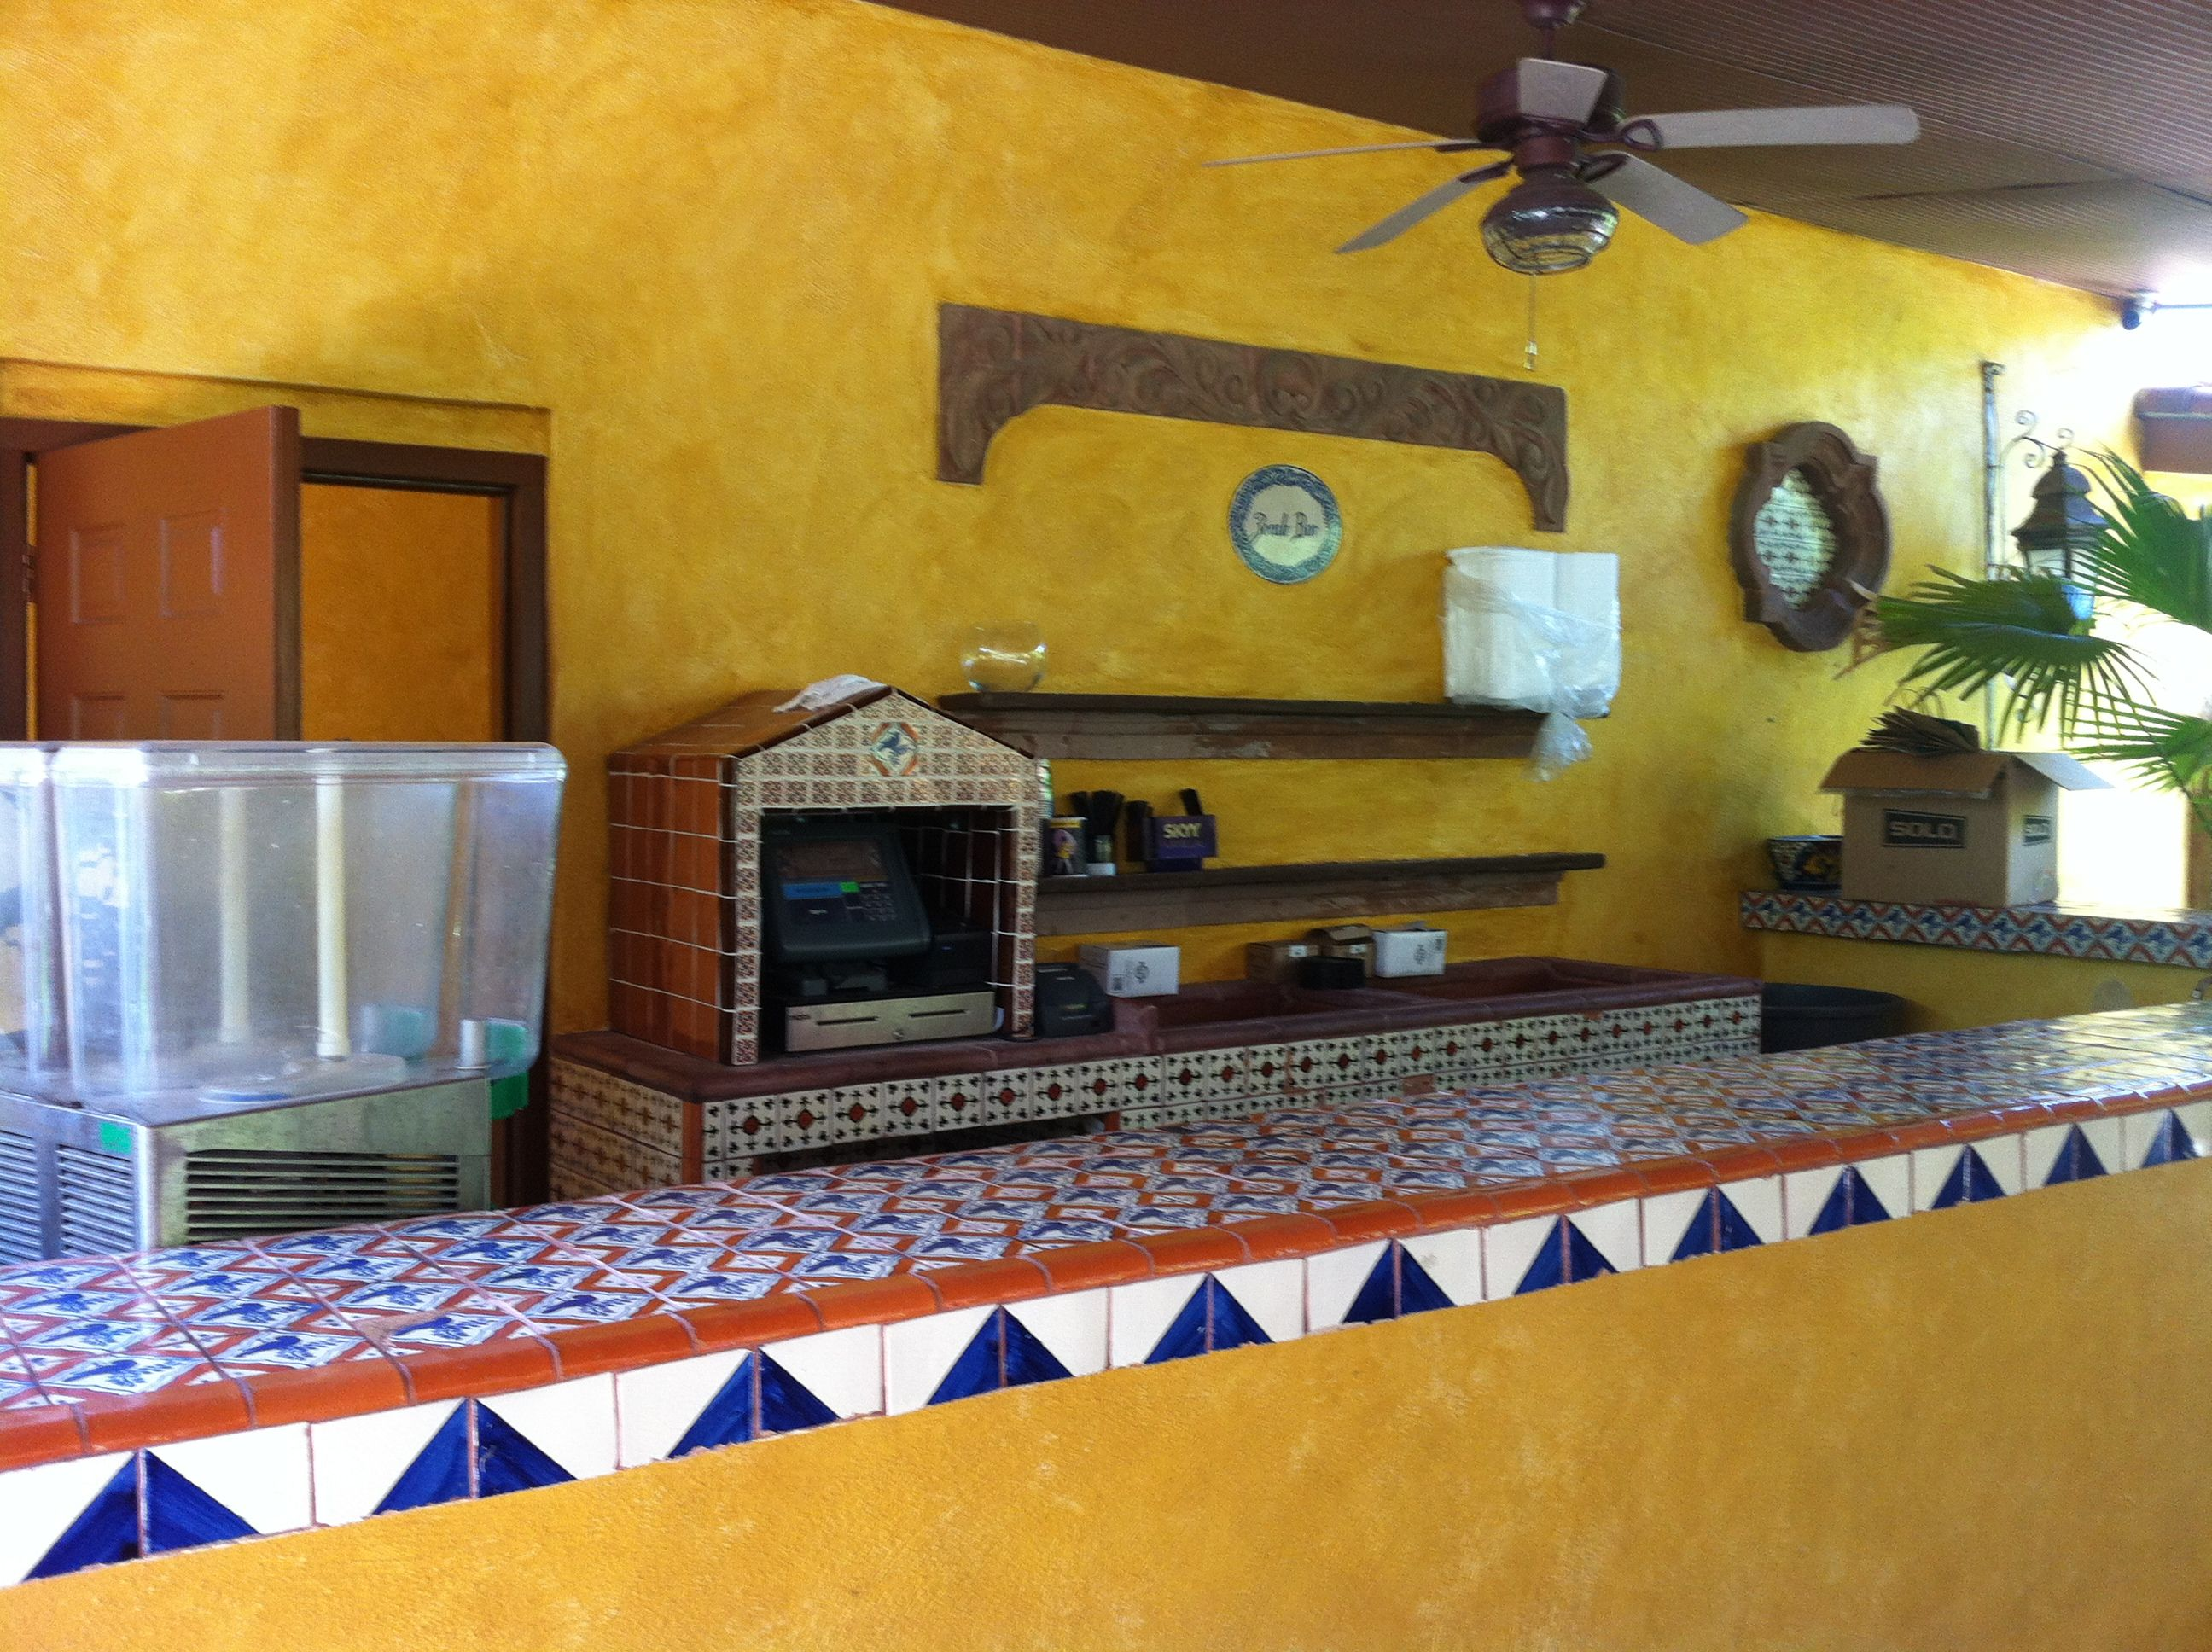 Mexican Outdoor Kitchen Ideas on mexican outdoor cooking, mexican adobe house kitchen, mexican outdoor cafe, mexican outdoor landscape, mexican kitchen decor, mexican deck, hexagon tile in kitchen, mexican family kitchen, mexican outdoor patio, mexican barn, mexican kitchen paint, mexican outdoor chairs, mexican fire features, mexican outdoor decor, mexican kitchen countertops, mexican outdoor lights, mexican outdoor marketplace, mexican outdoor shower, bright colors mexican kitchen, mexican outdoor stoves,